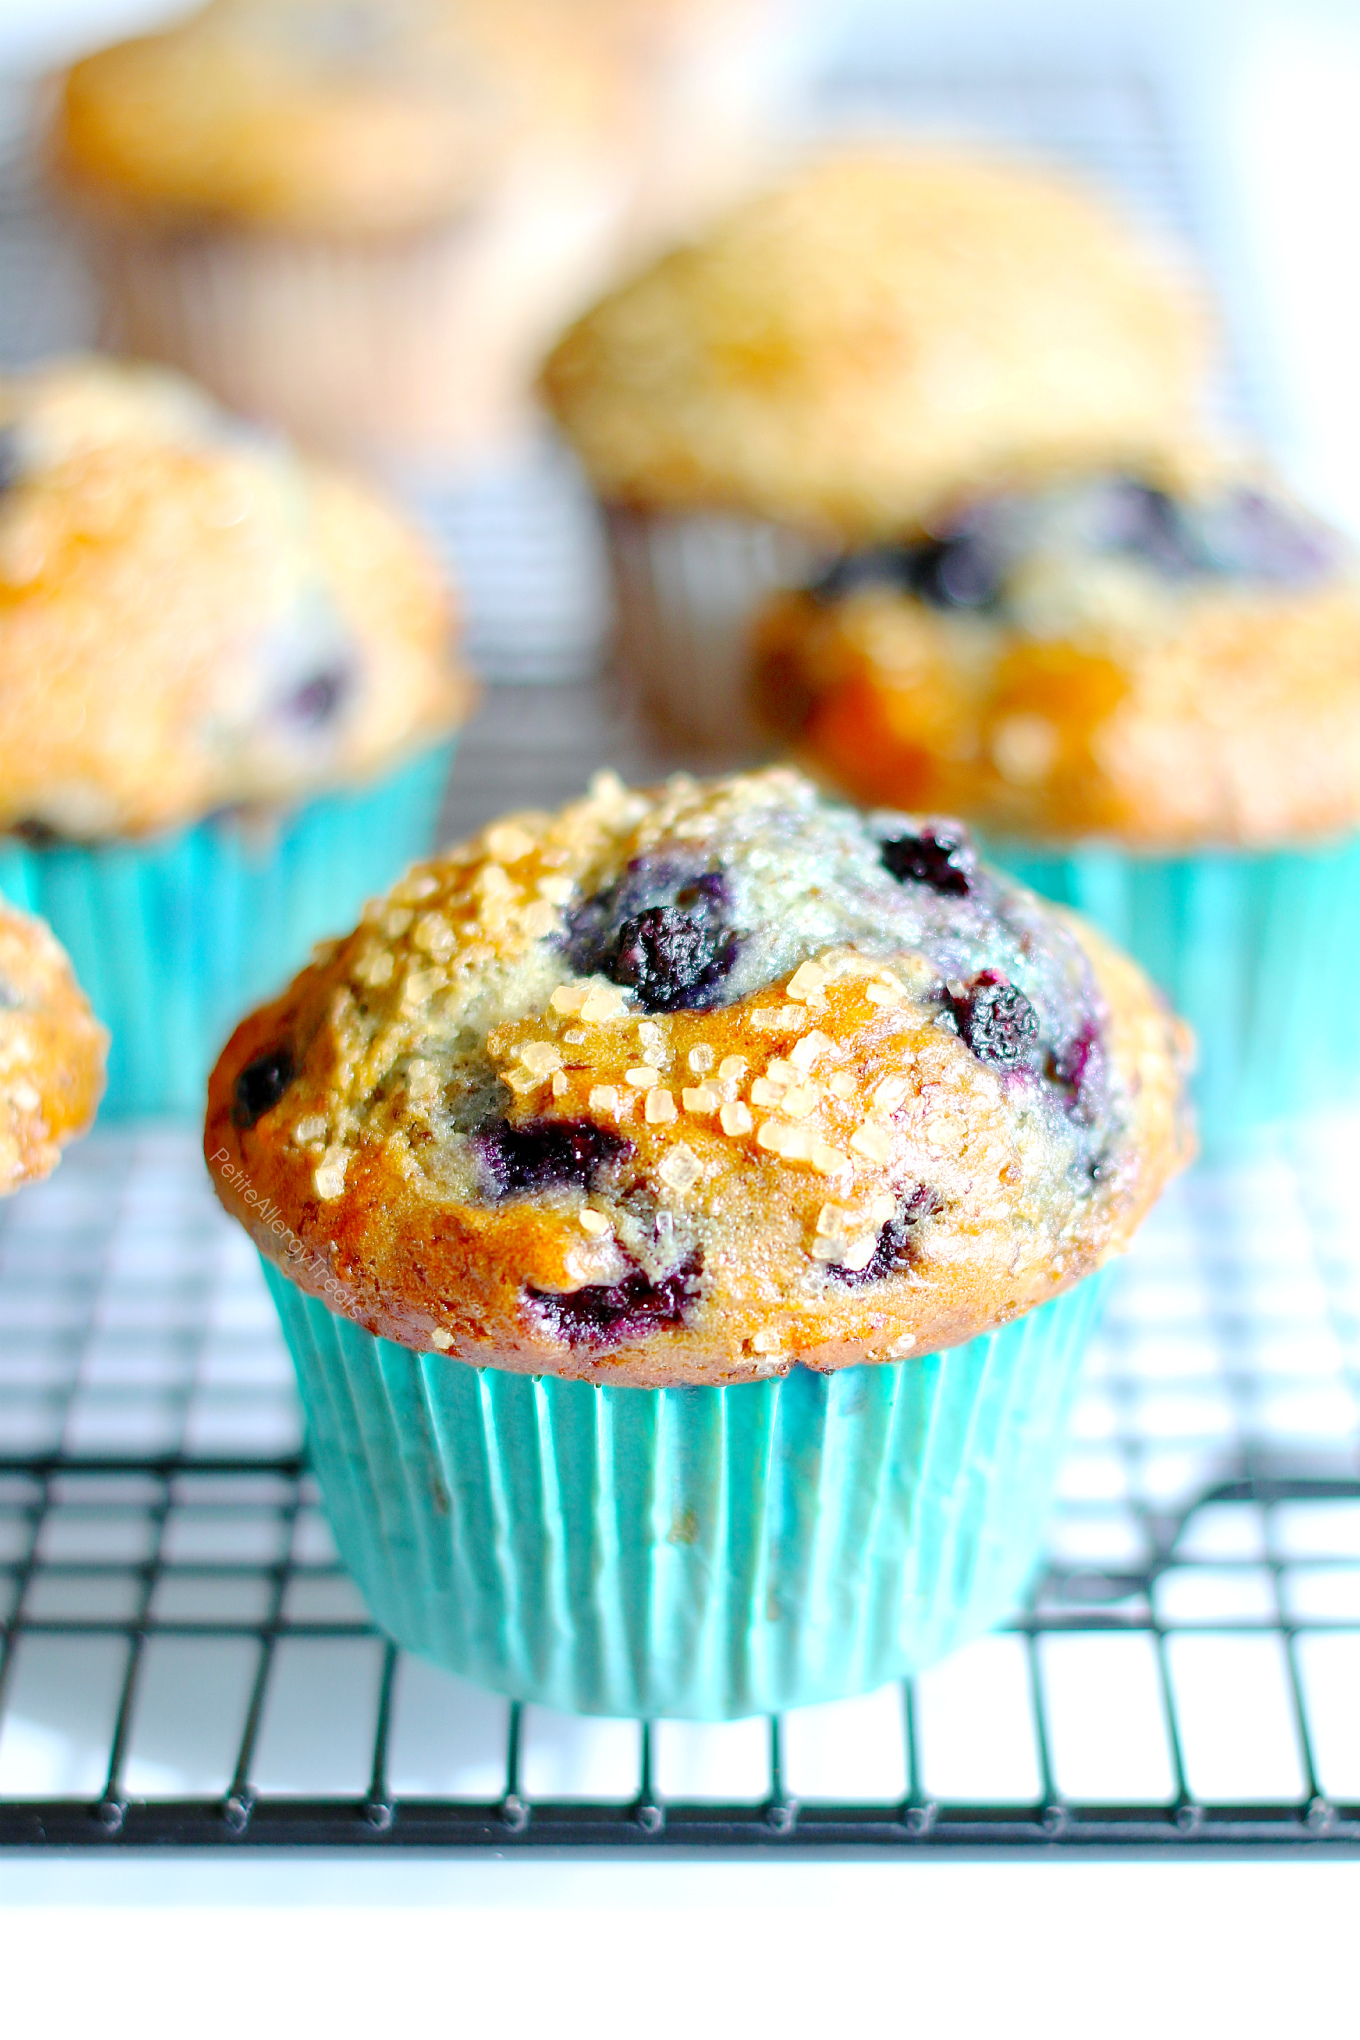 Blueberry Muffins (gluten free vegan dairy free egg free) Recipe- Delicious HUGE Bakery style gluten free blueberry muffins! Super #FoodAllergy friendly- #dairyfree, #eggfree, #nutfree #soyfree